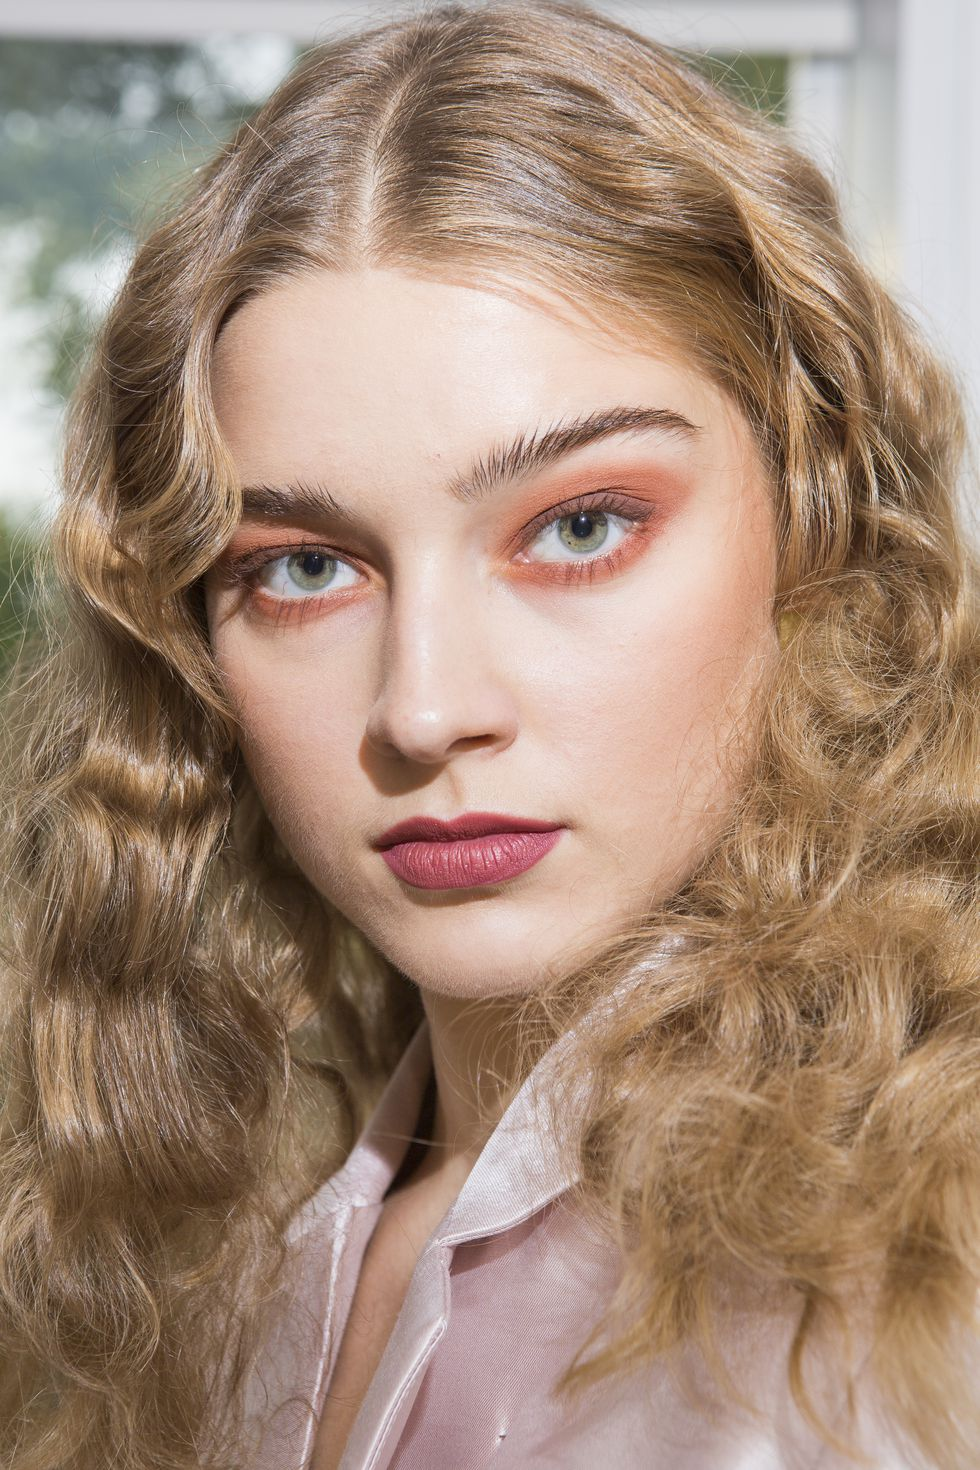 spring-summer-2018-hair-makeup-trends-cynthia-rowley-1506692567